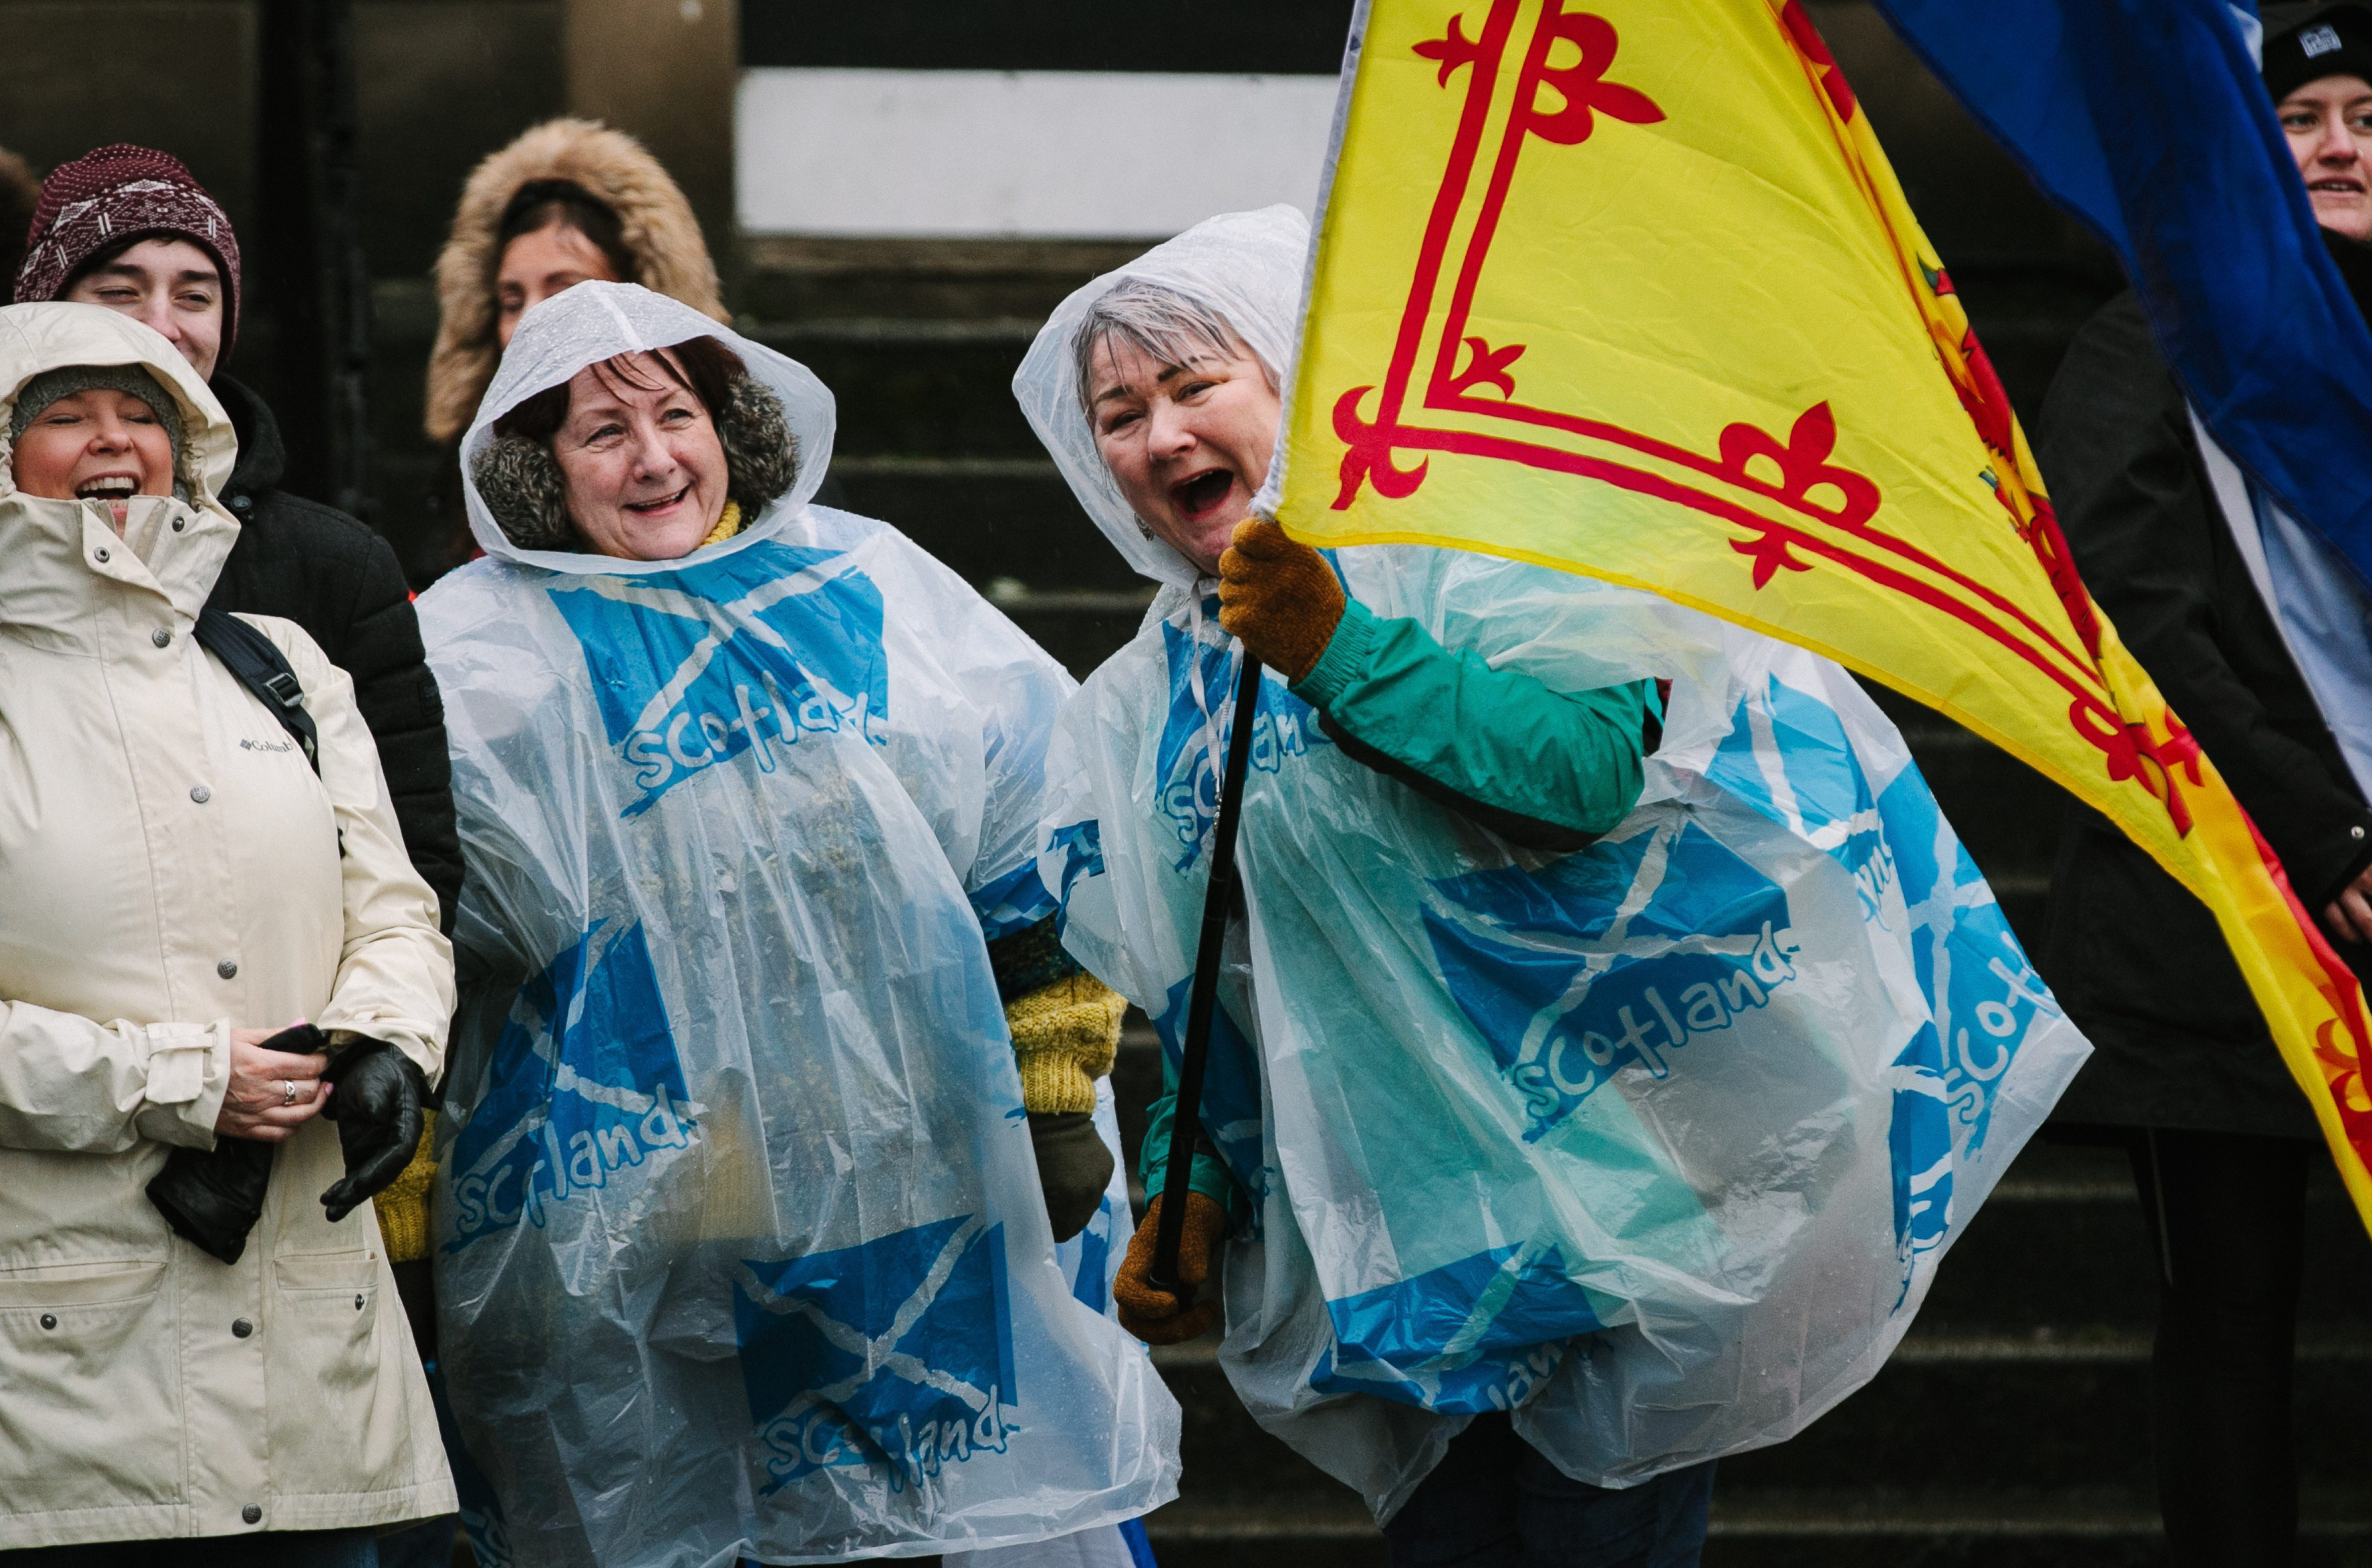 Independence supporters brave the bad weather